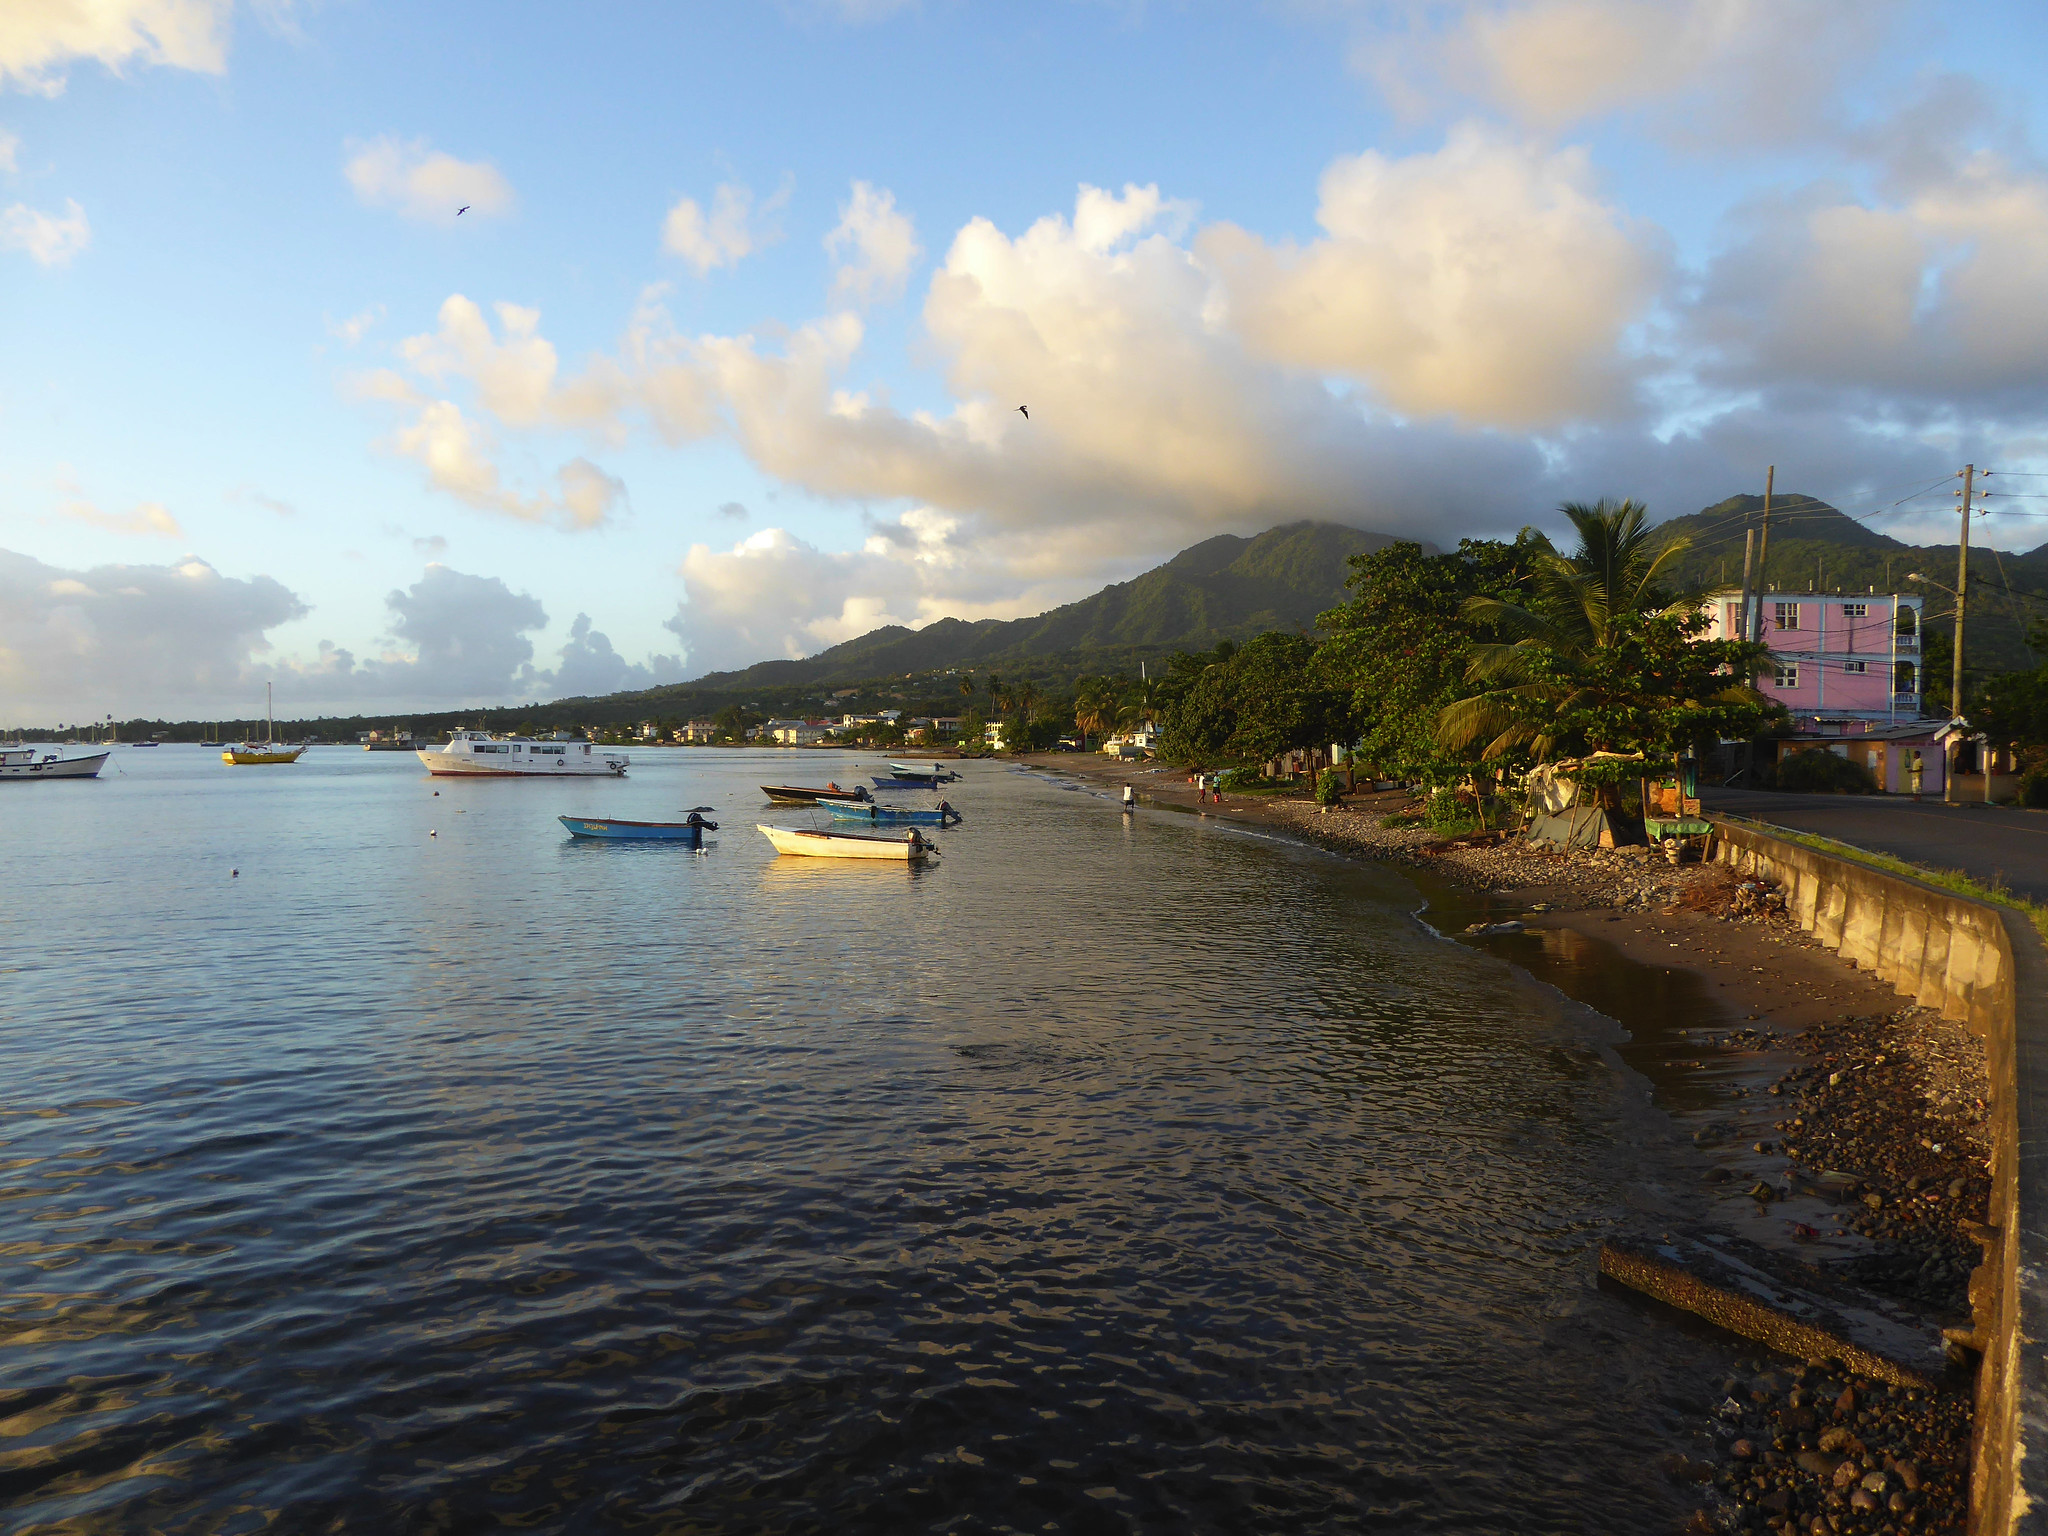 Dominica - The Caribbean Island for Adrenaline Junkies